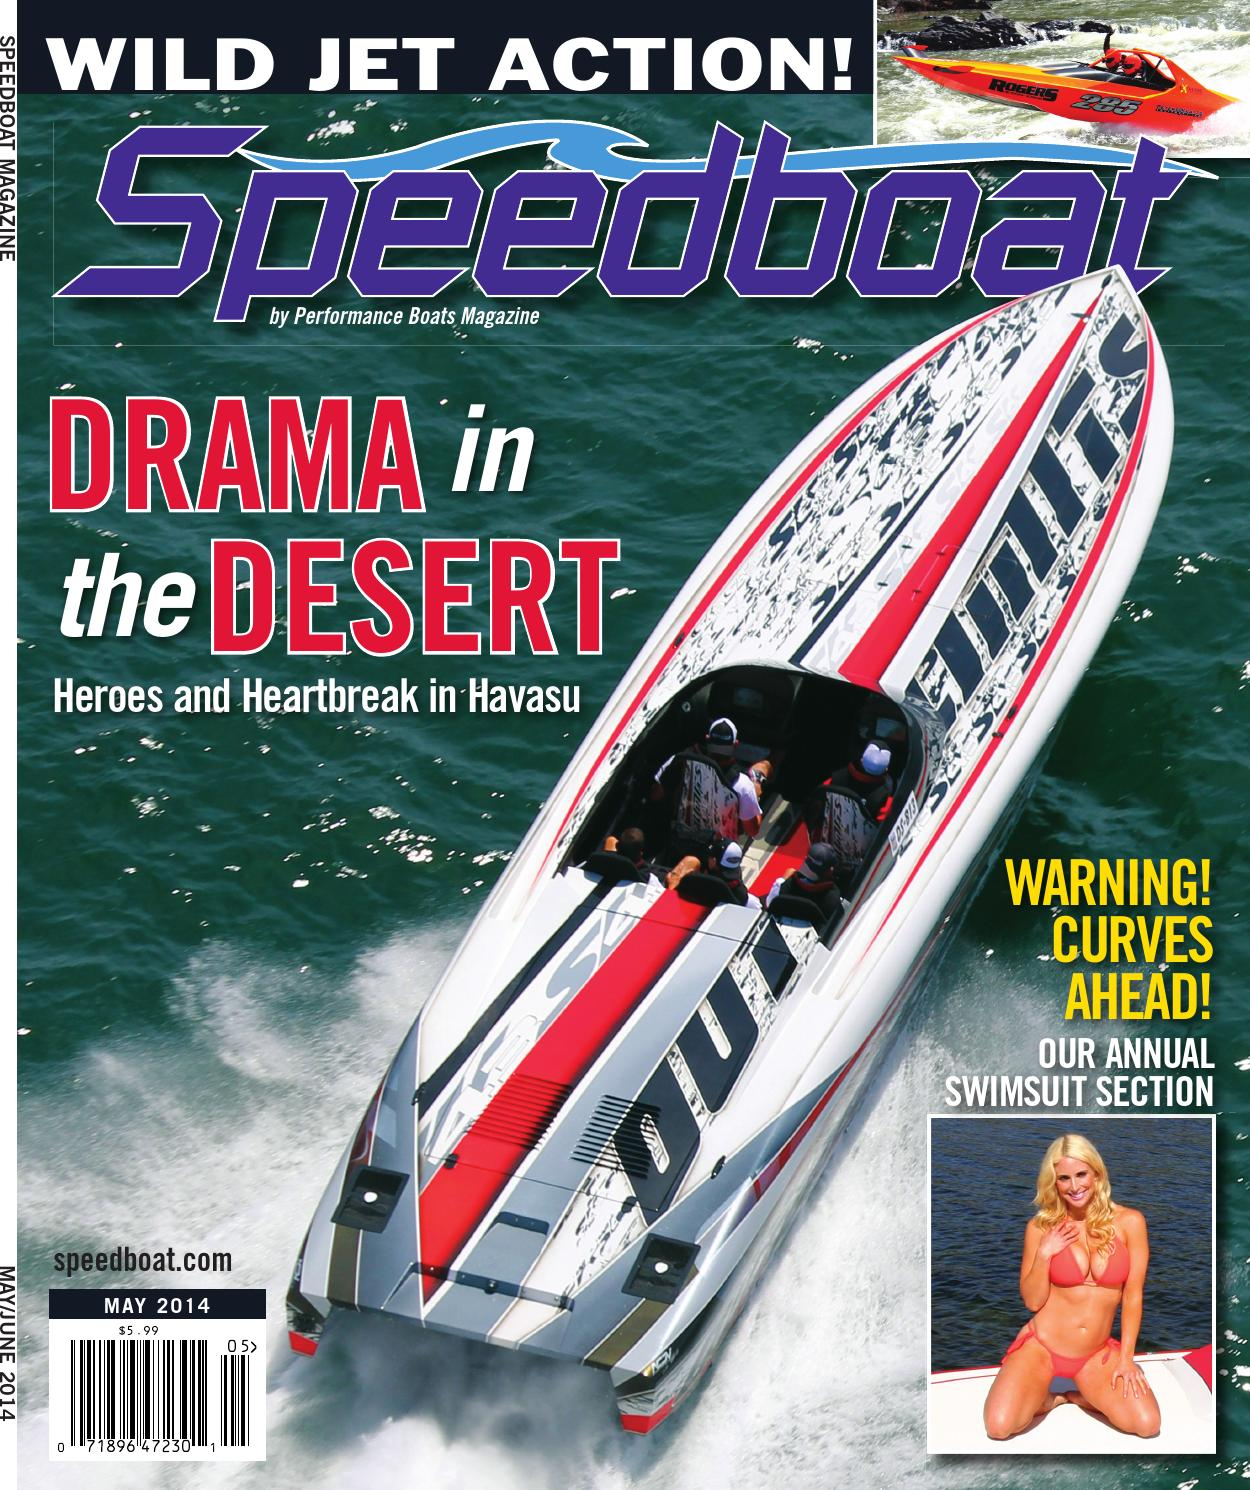 Fastest Jet In The World >> Speedboat June 2014 by Brett Bayne - Issuu